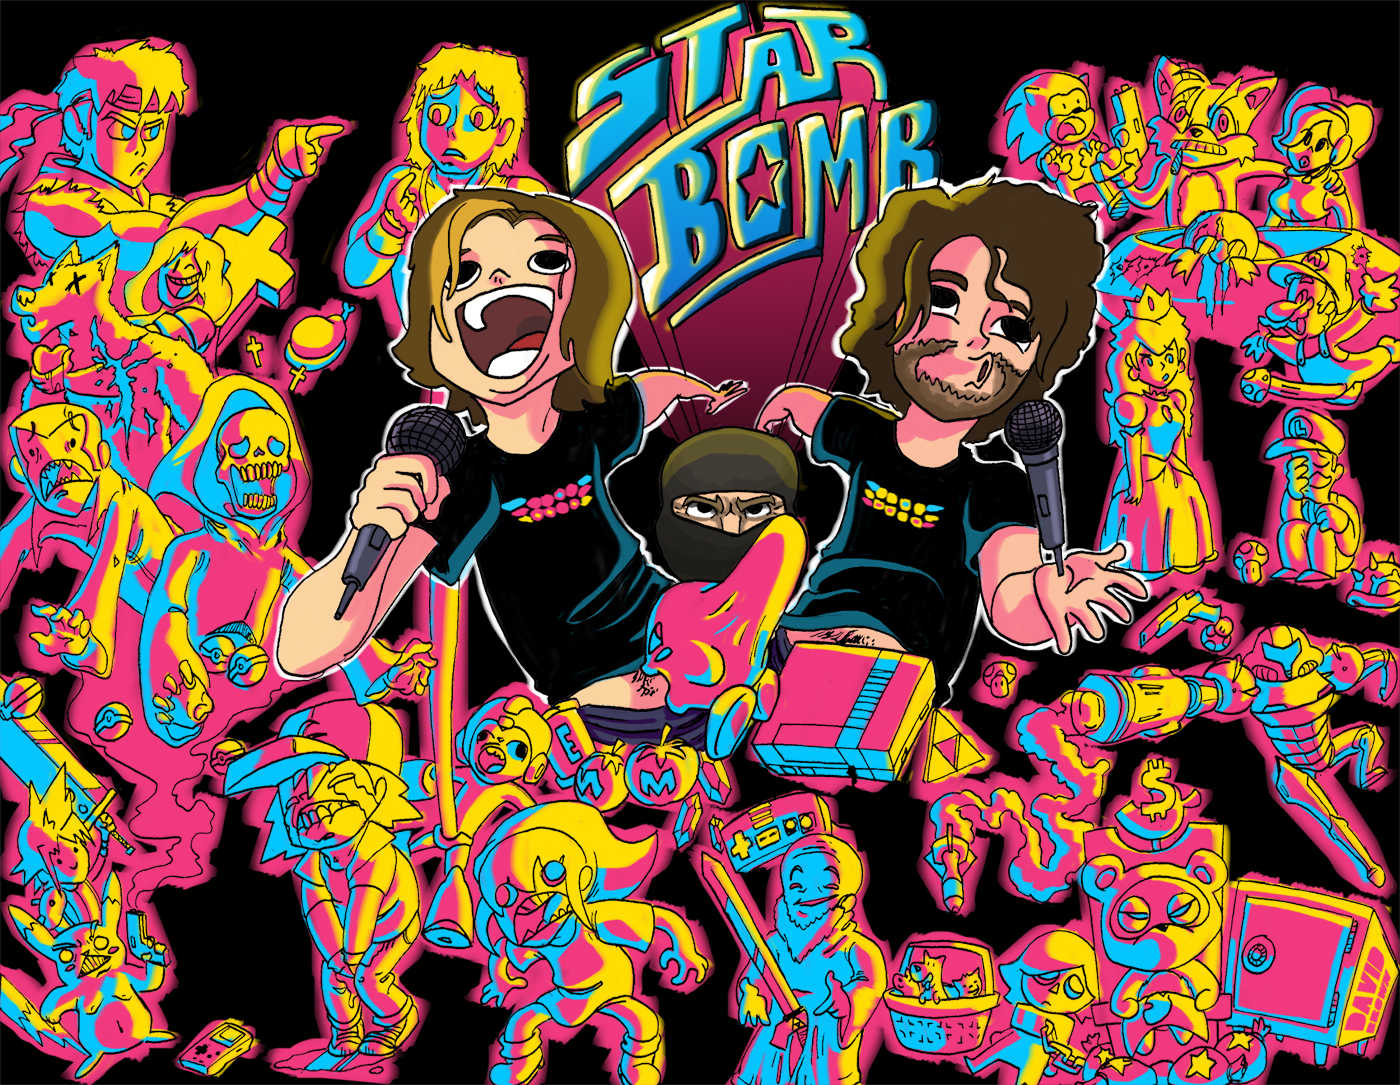 Starbomb is here!